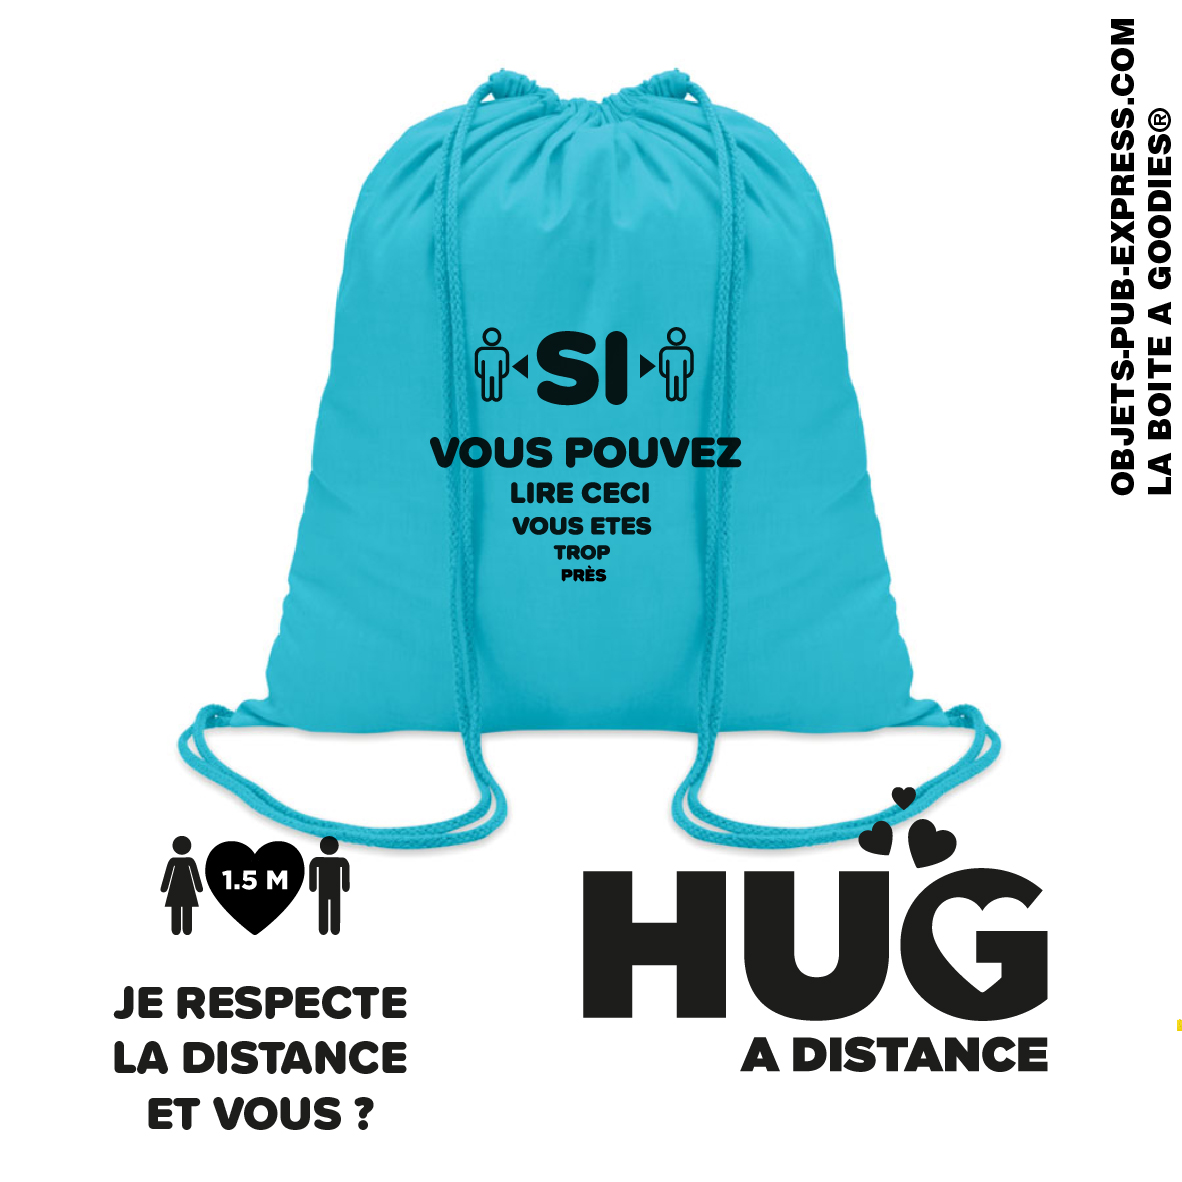 sac a dos ficelle message distanciation